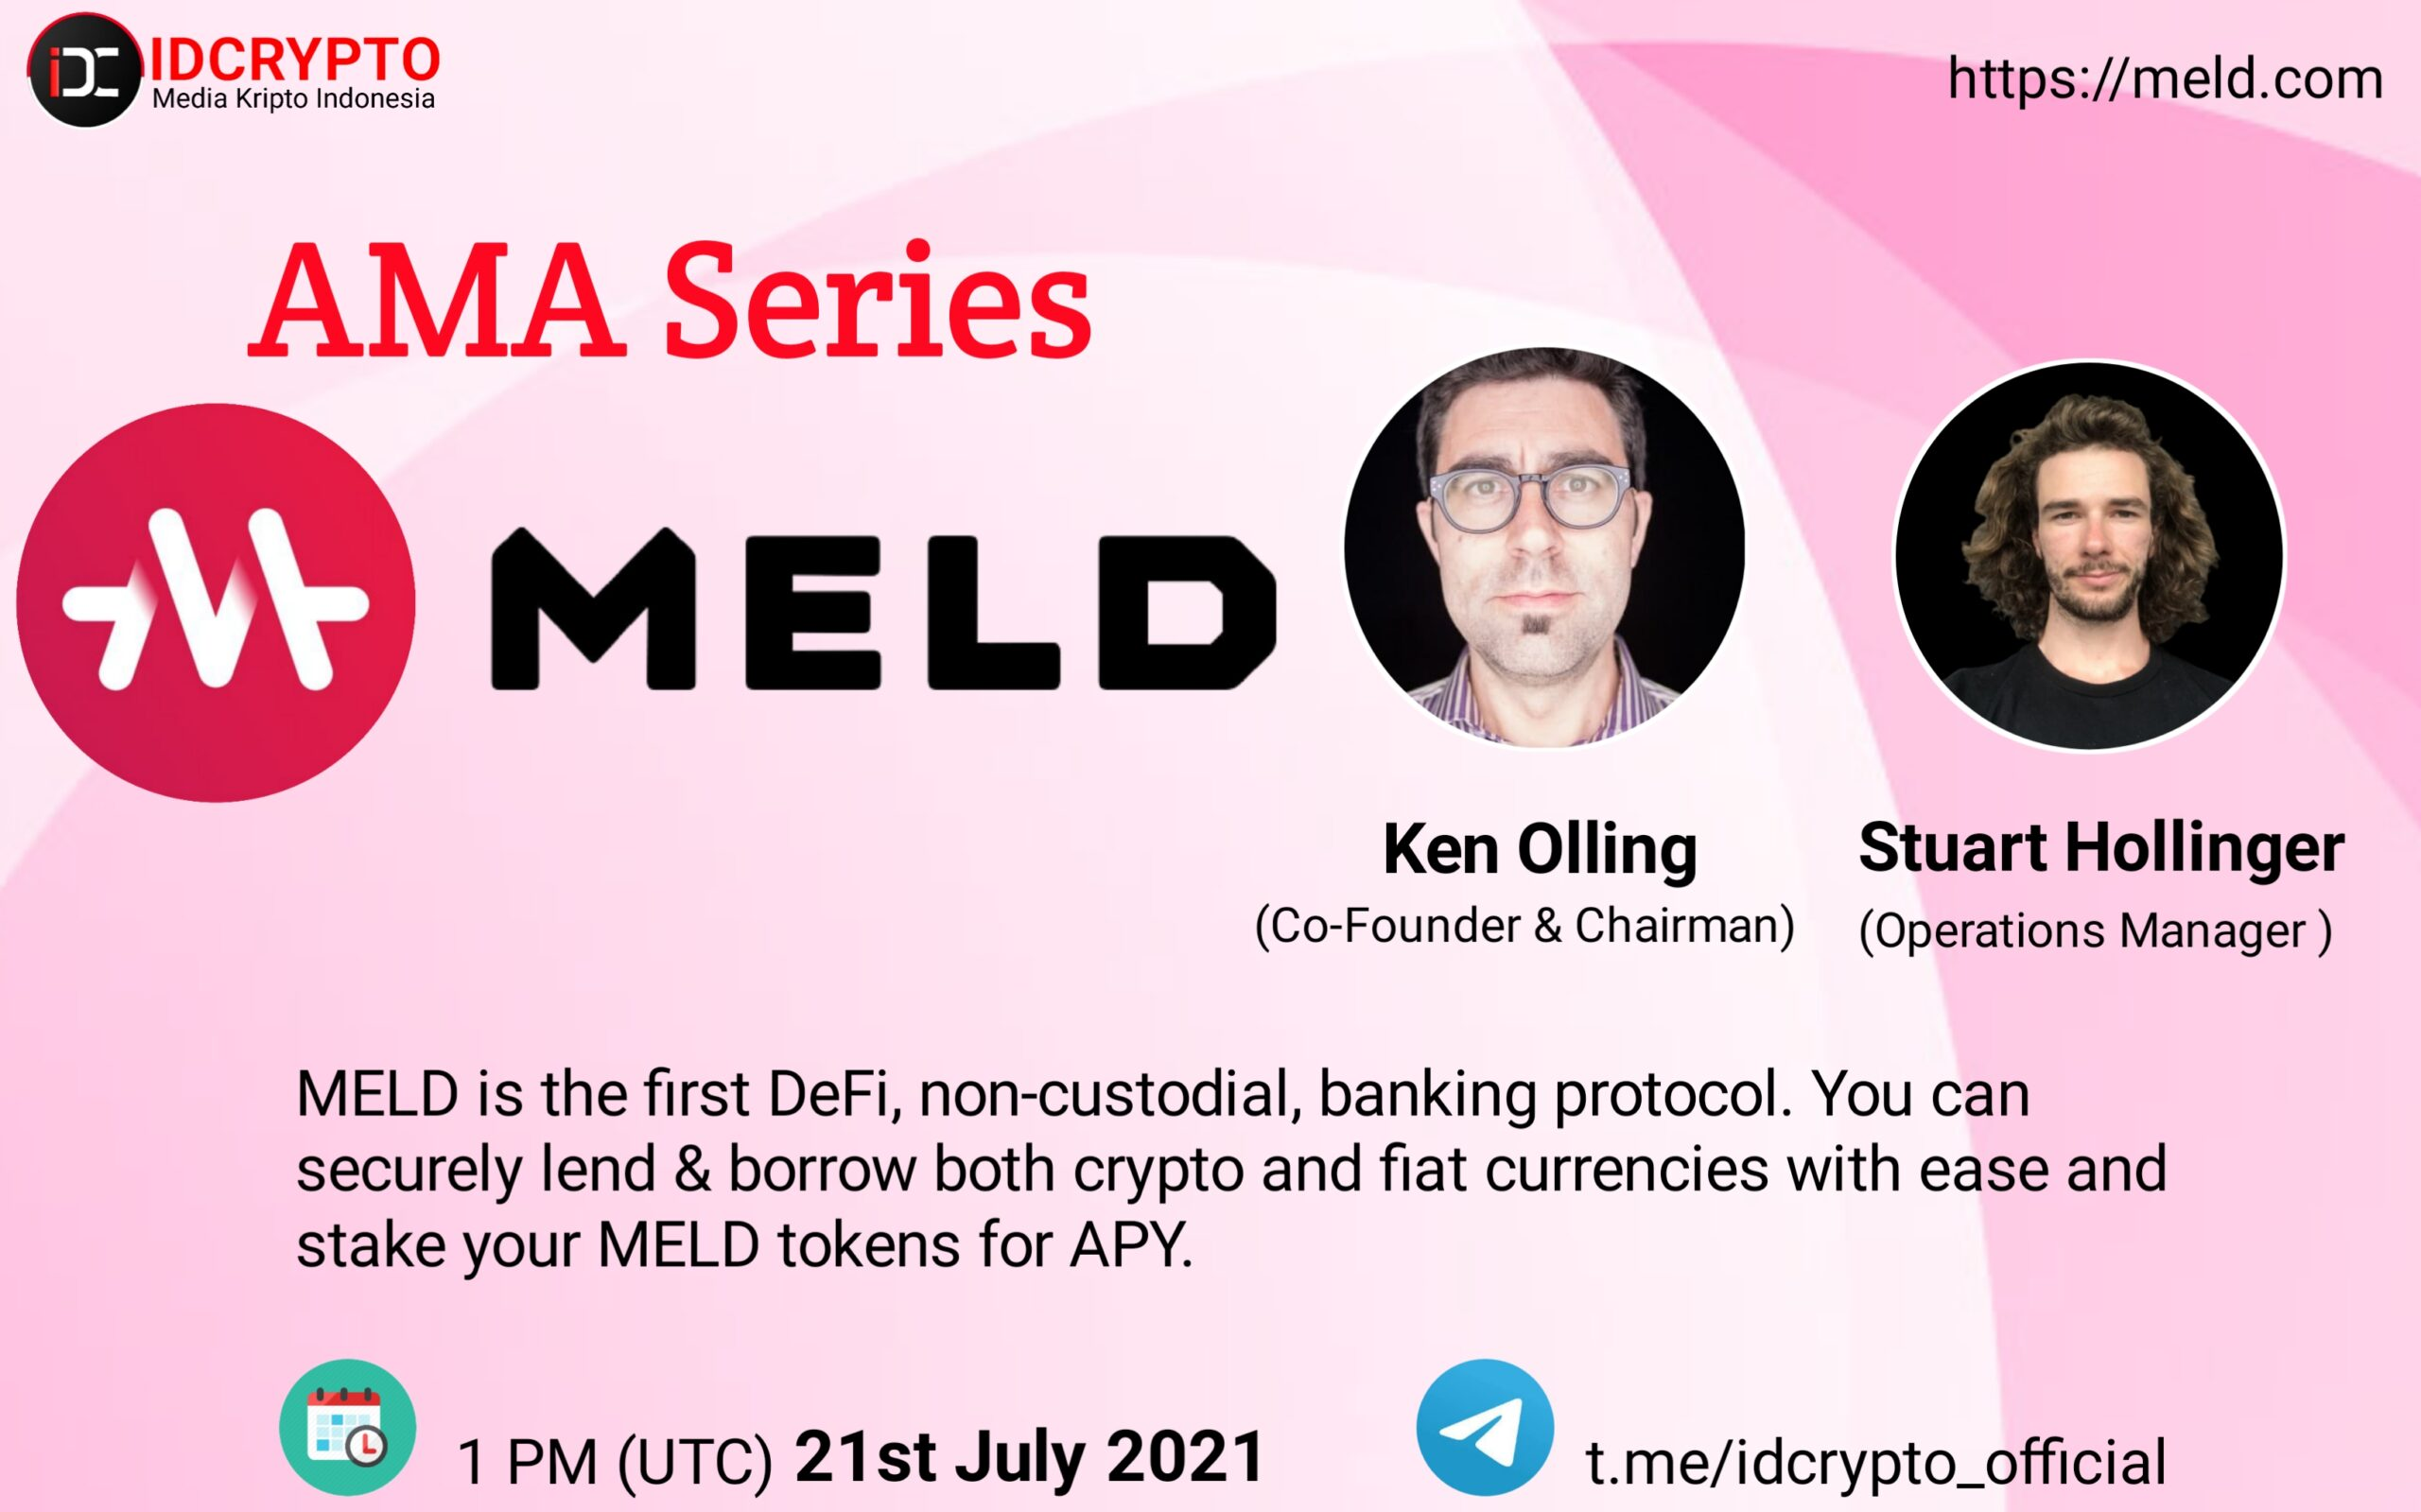 We are pleased to announce our next AMA with MELD on Wednesday, July 21st, 2021 at 1 PM UTC |20:00 GMT+7